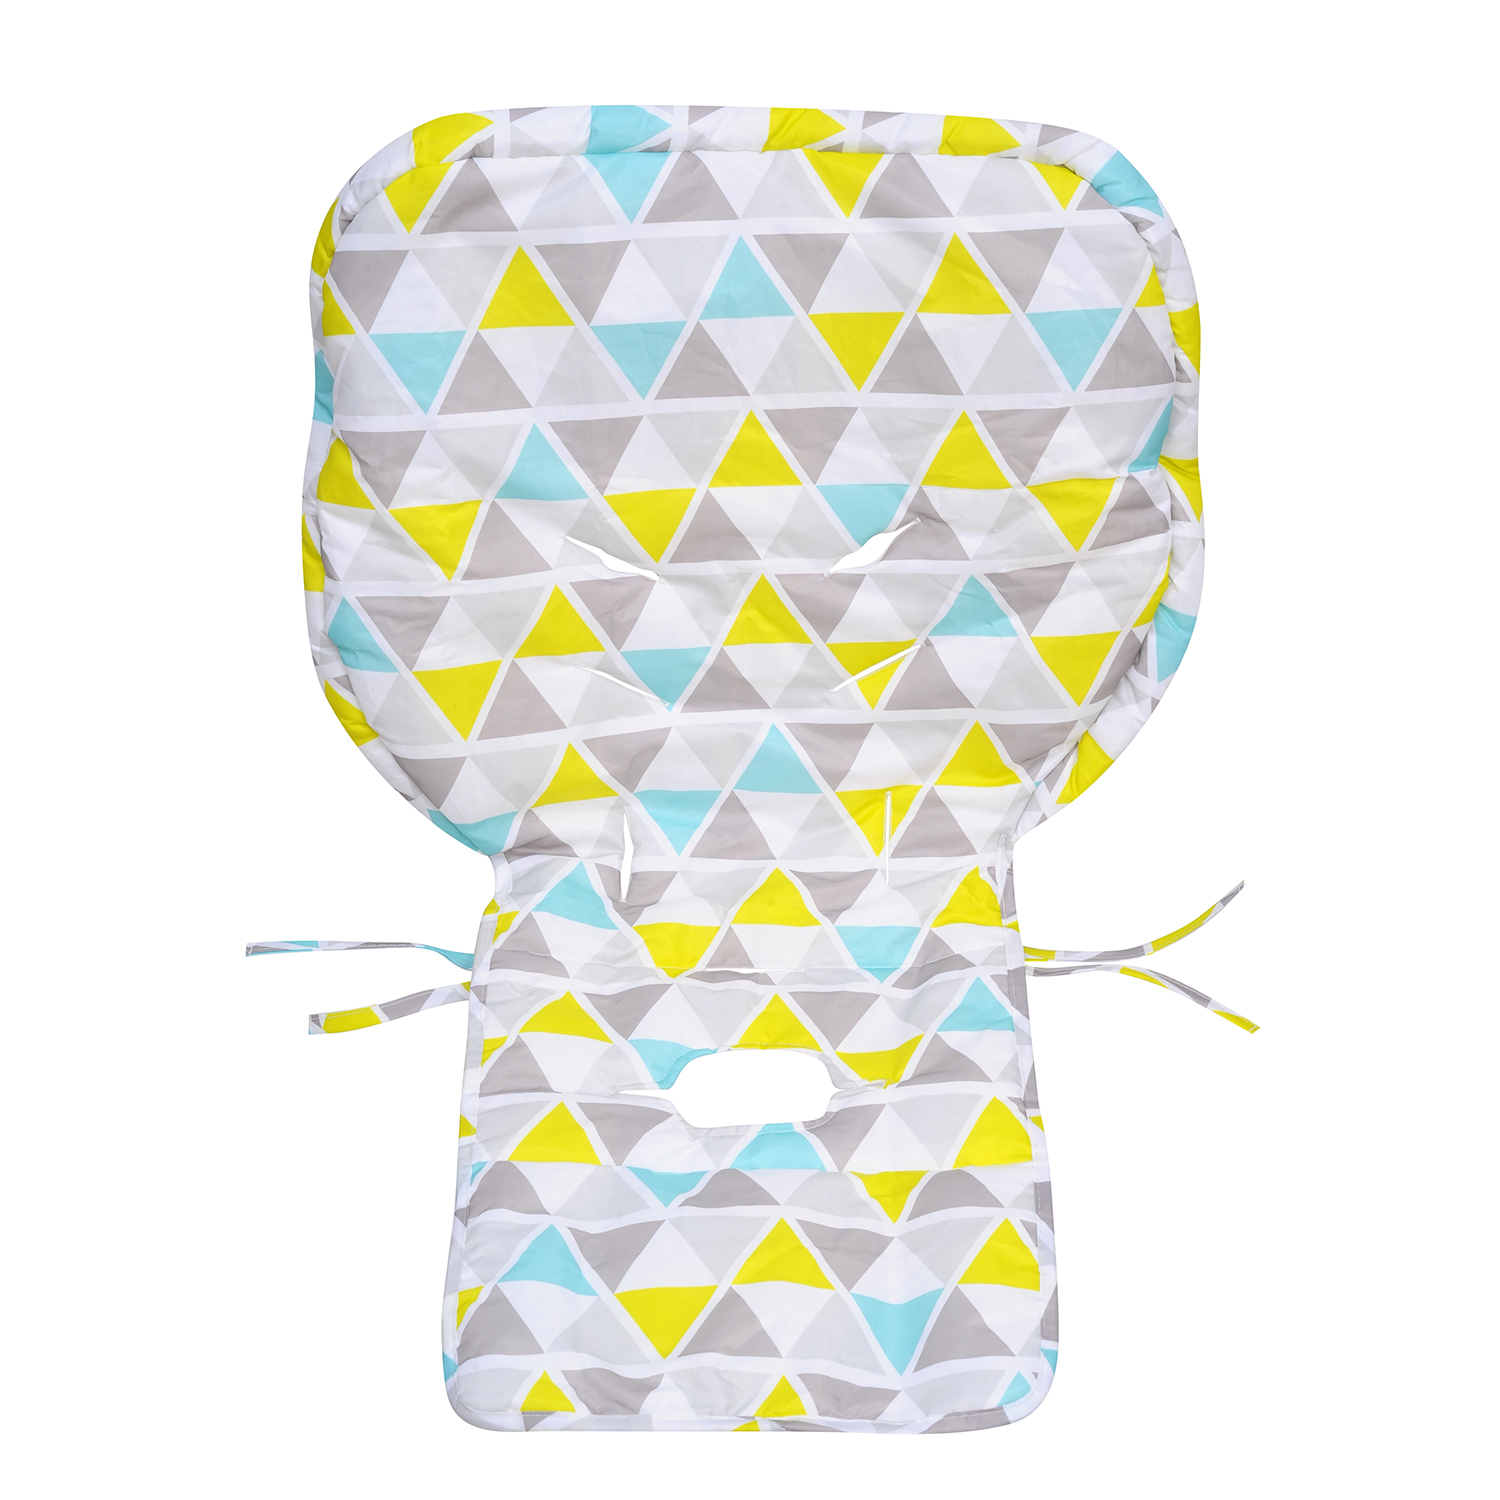 Nuby Triangle High Chair Cover by Nuby